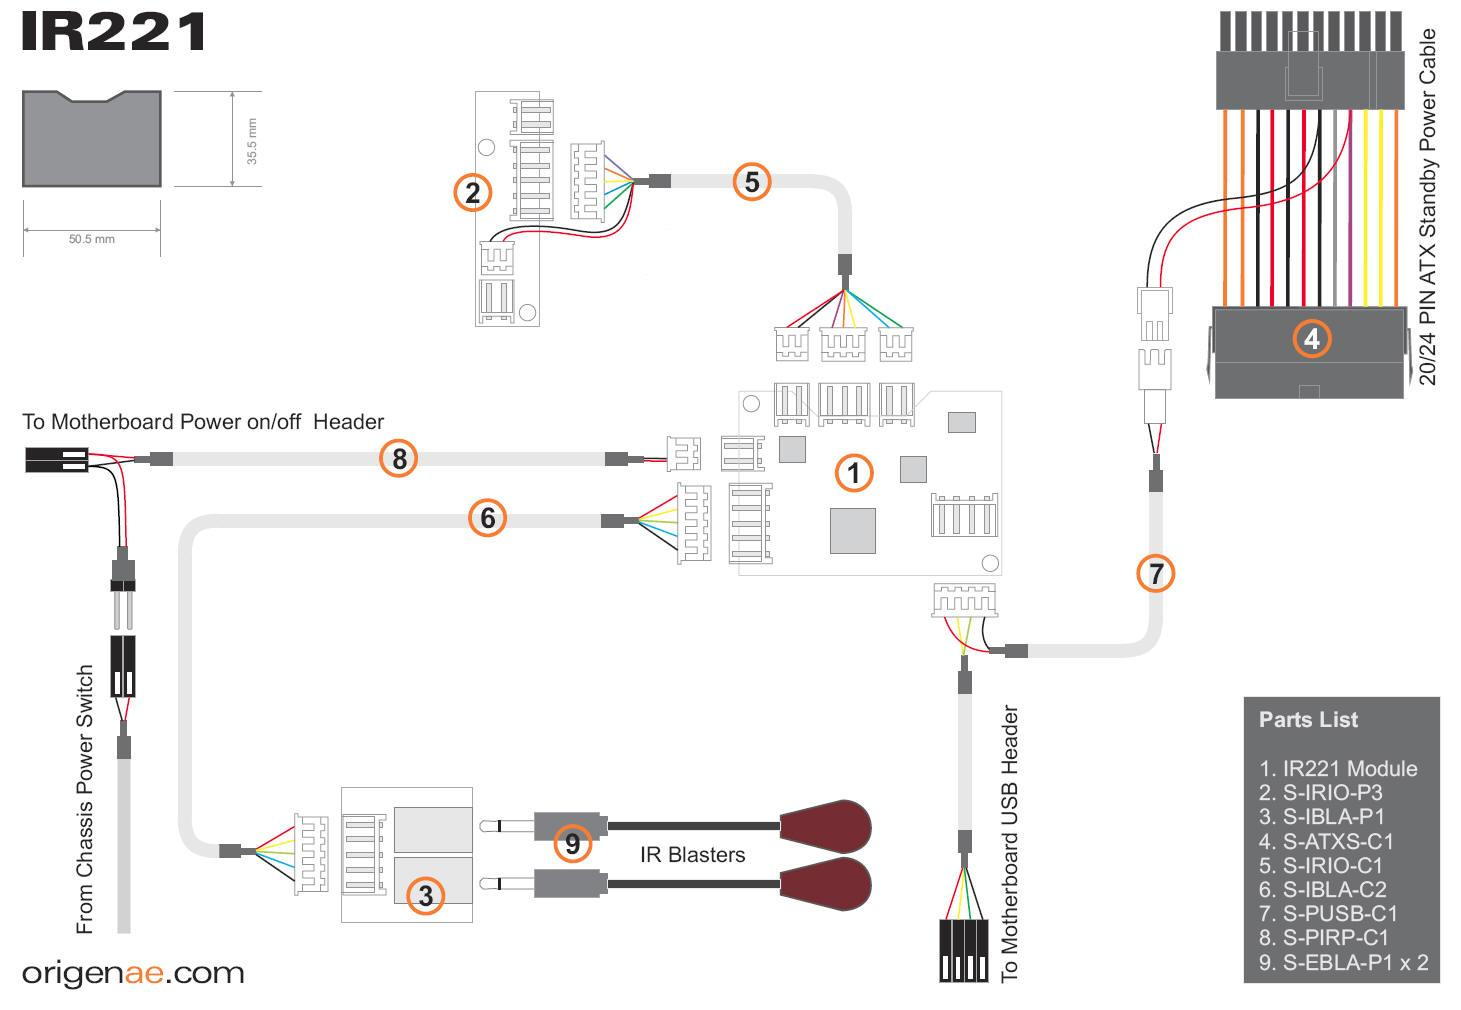 Power Cable Wiring Diagram And Schematics Usb Colours Sata To Pinout Get Free Image Molex